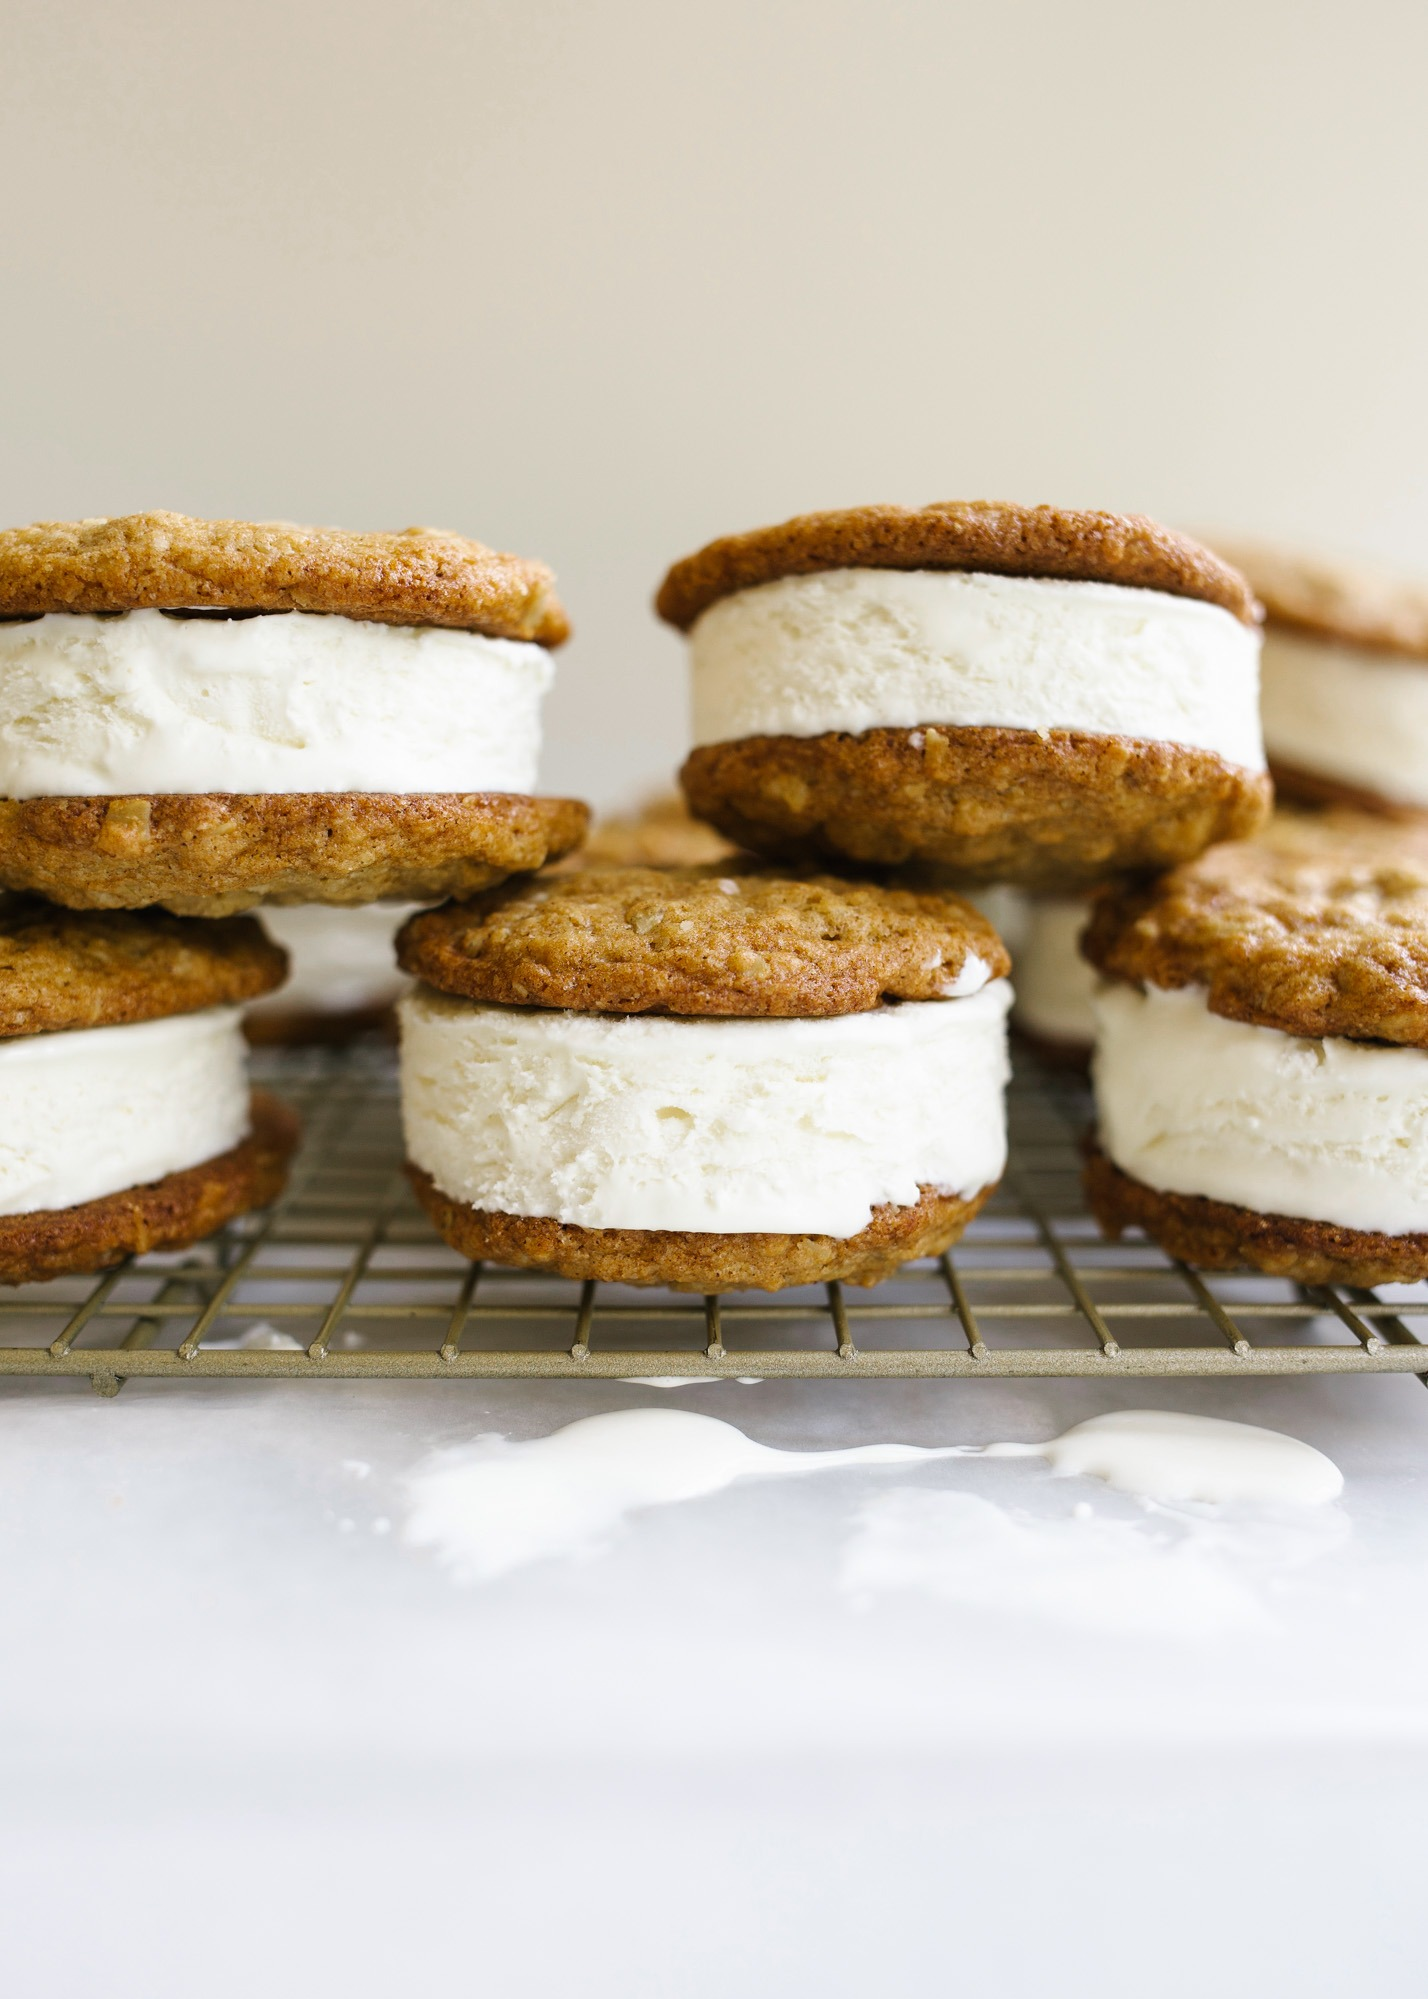 Oatmeal Cream Pie Ice Cream Sandwiches by Wood and Spoon blog. These are a frozen version of the traditional store bought cookie sandwiches made with chewy thin oatmeal cookies and filled with a no-churn marshmallow ice cream. The ice cream comes together with three ingredients including marshmallow fluff and the cookies stay soft even when frozen! Learn more about this treat and how to make homemade frozen ice cream sandwiches on thewoodandspoon.com